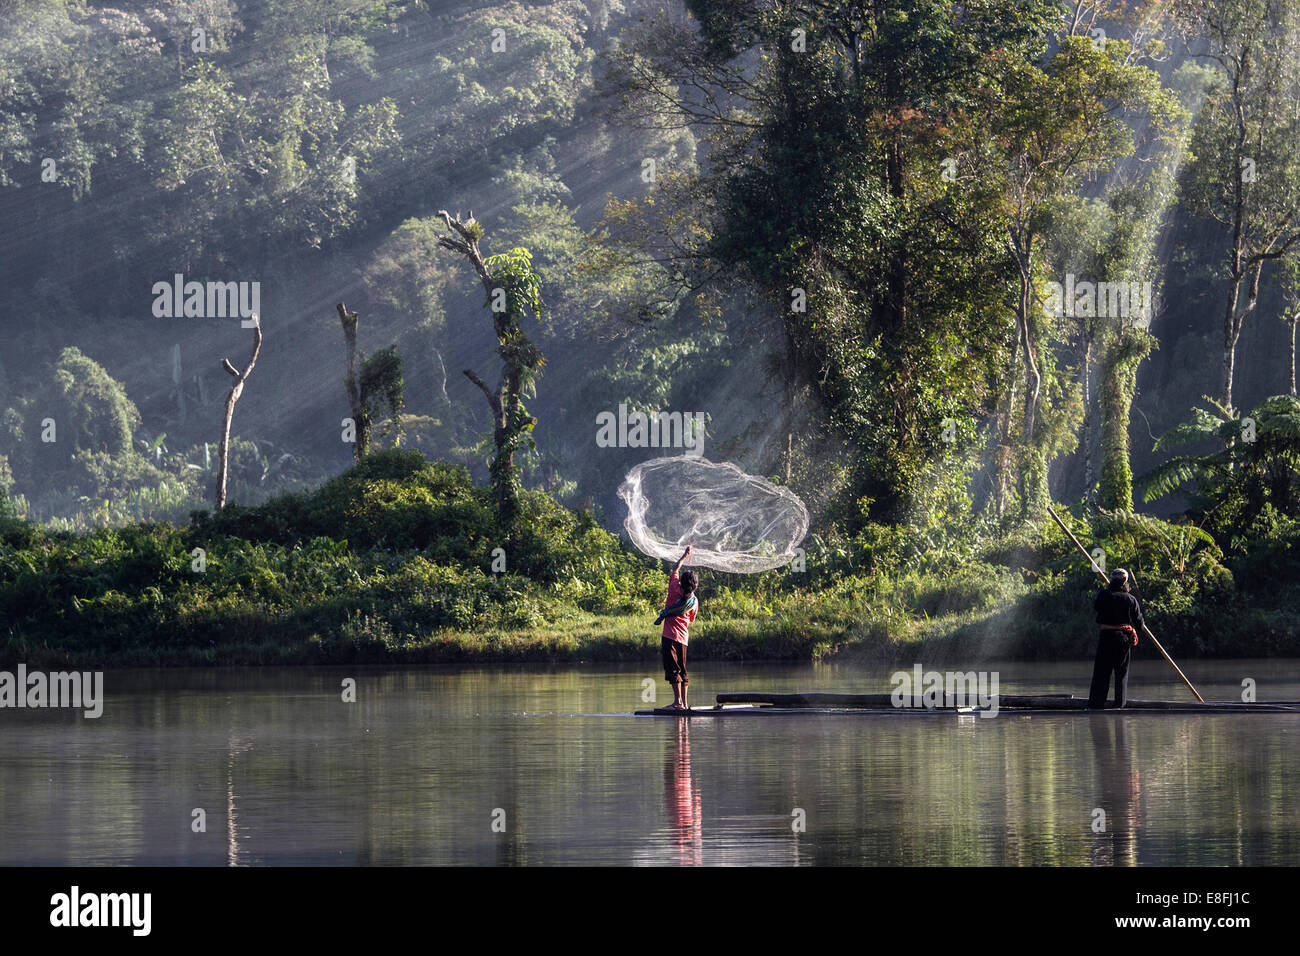 Indonesia, West Java, Karawang, Situ Gunung, Man throwing fishing net into water Stock Photo